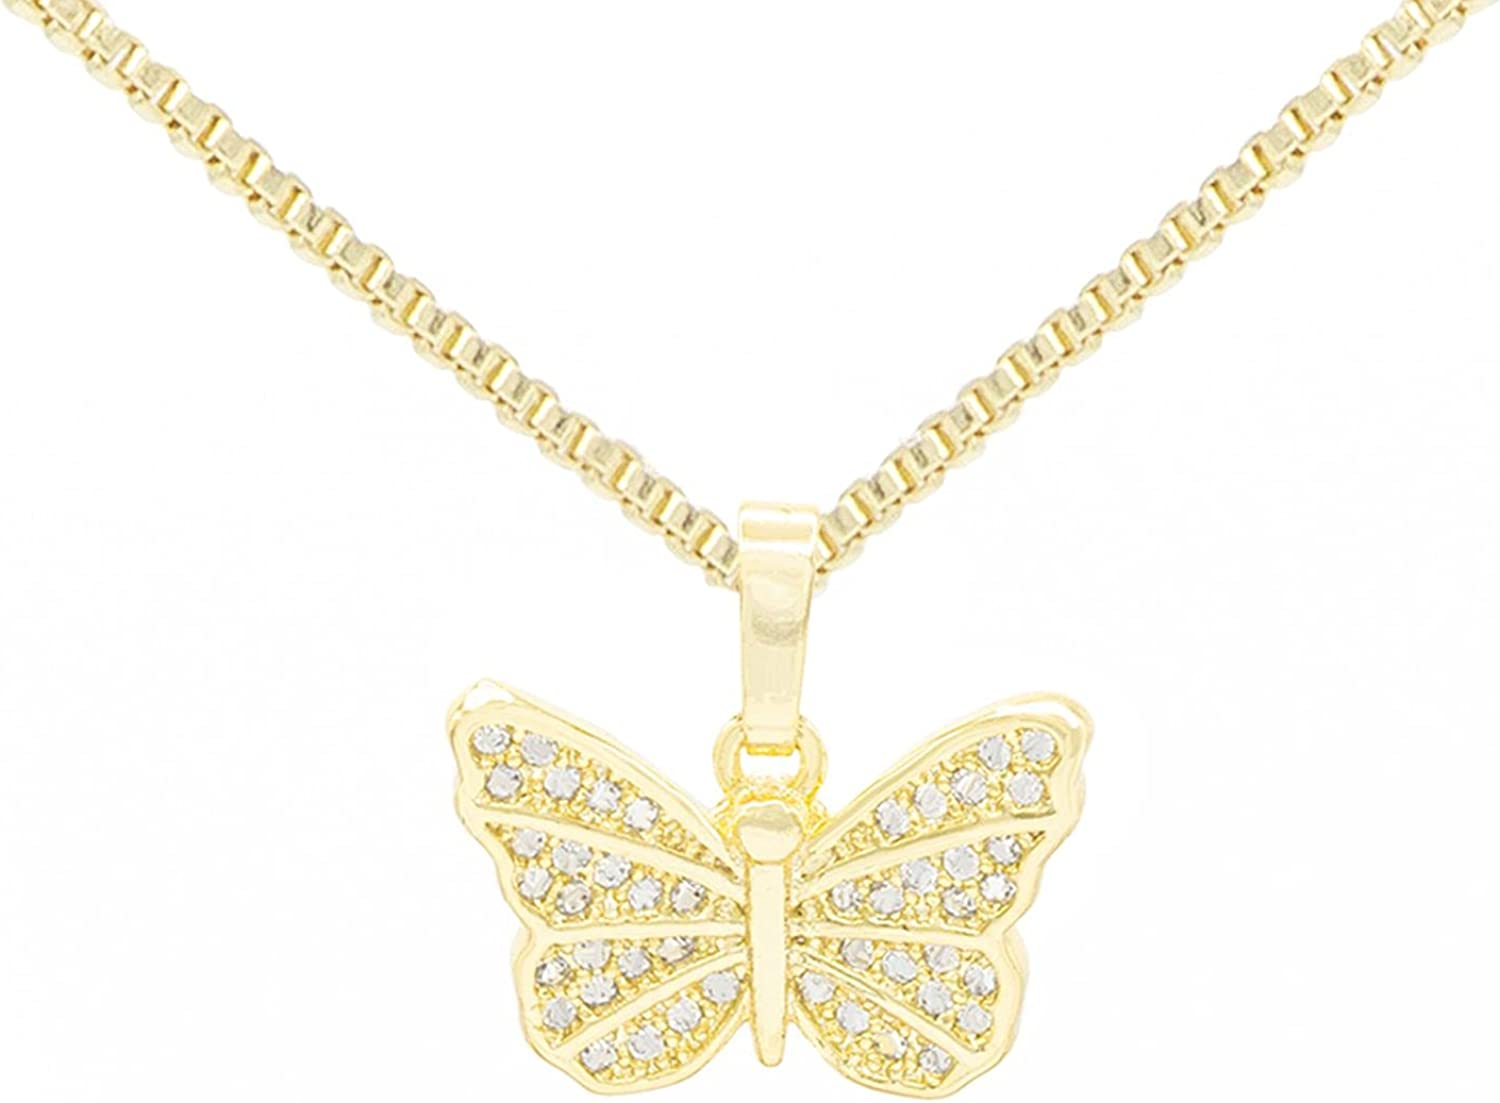 """BEBERLINI Butterfly Pendant 14K Gold Filled Rope Box Cuban Chain Necklace Set Lobster Clasp Fashion Cubic Zirconia Jewelry Gift CZ Charms for Women Girls Teens 18"""" 20"""" 24"""""""